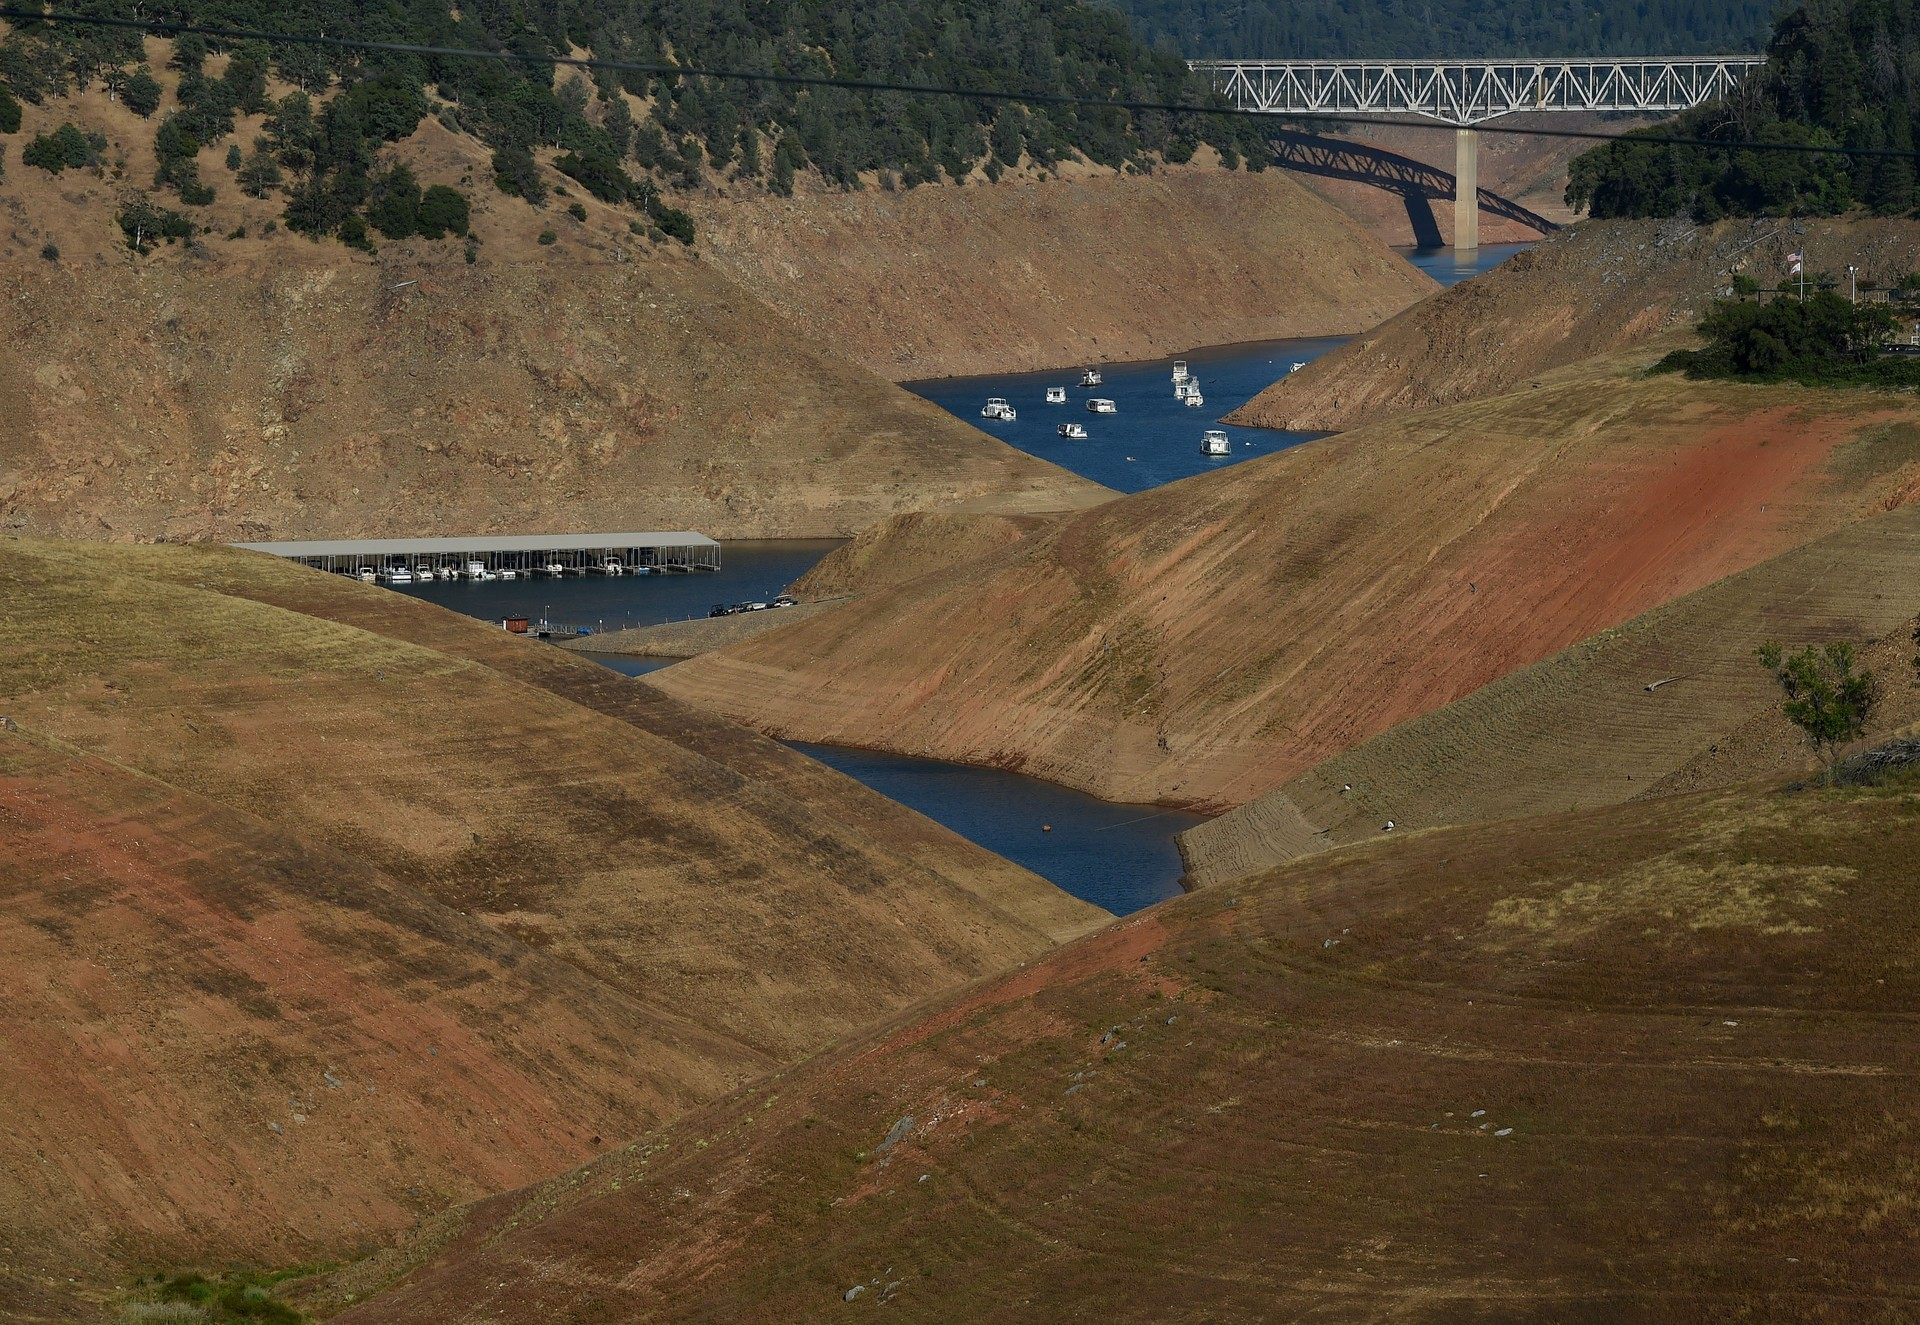 Lake Oroville, reduced to a relative puddle in 2015. This year it overflowed. Reservoir levels are one of more than 100 indicators considered by the U.S. Drought Monitor.